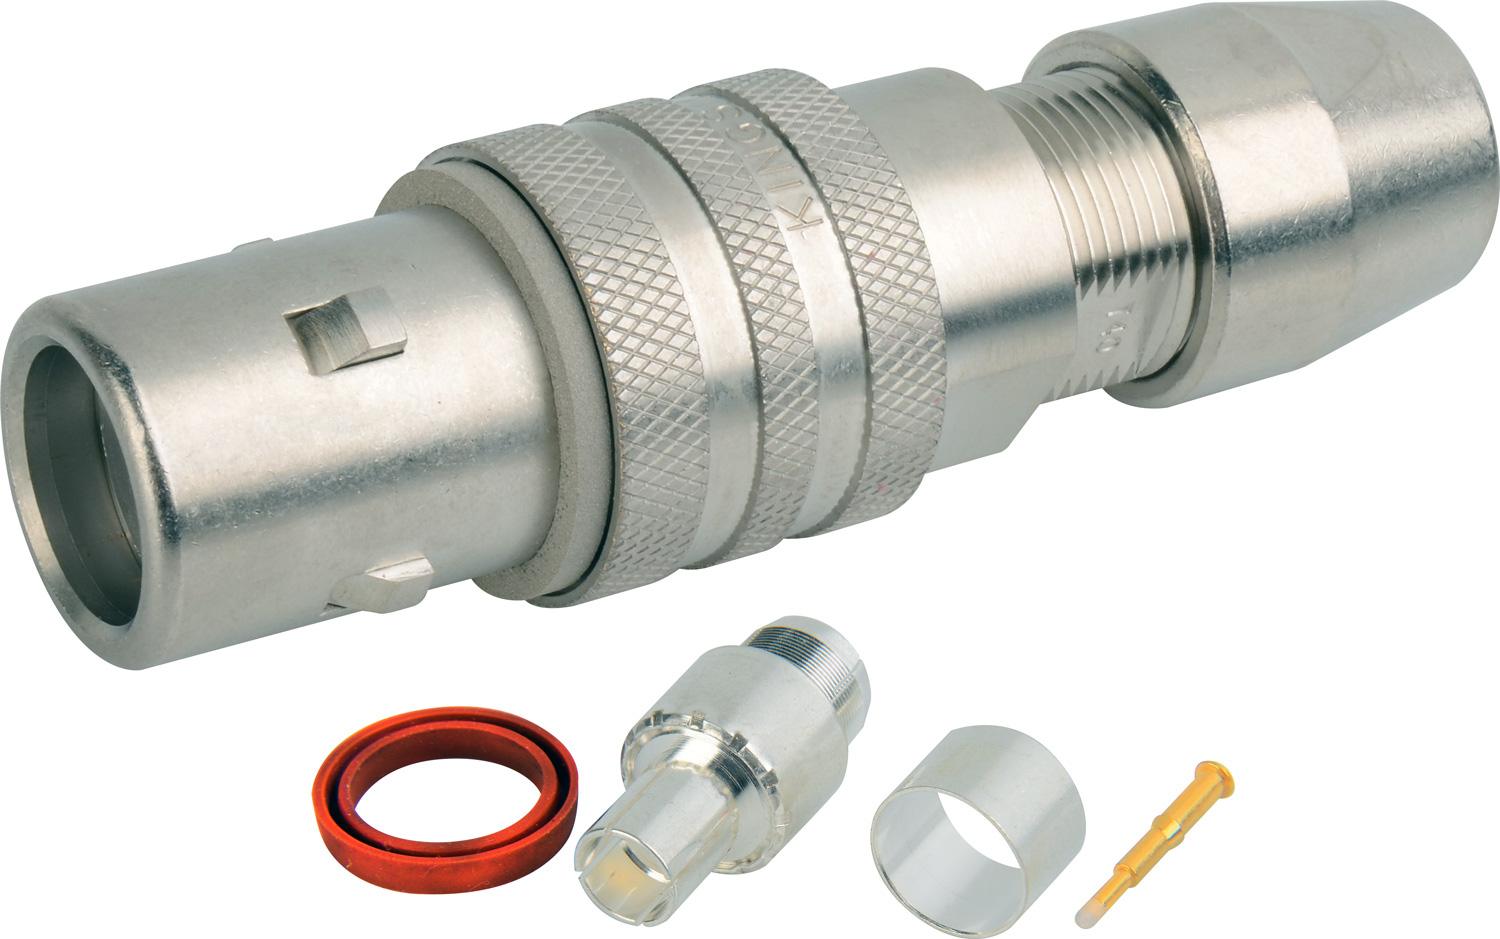 Kings Triax Tri-Loc Male Cable End for Belden 9232 KC-77053